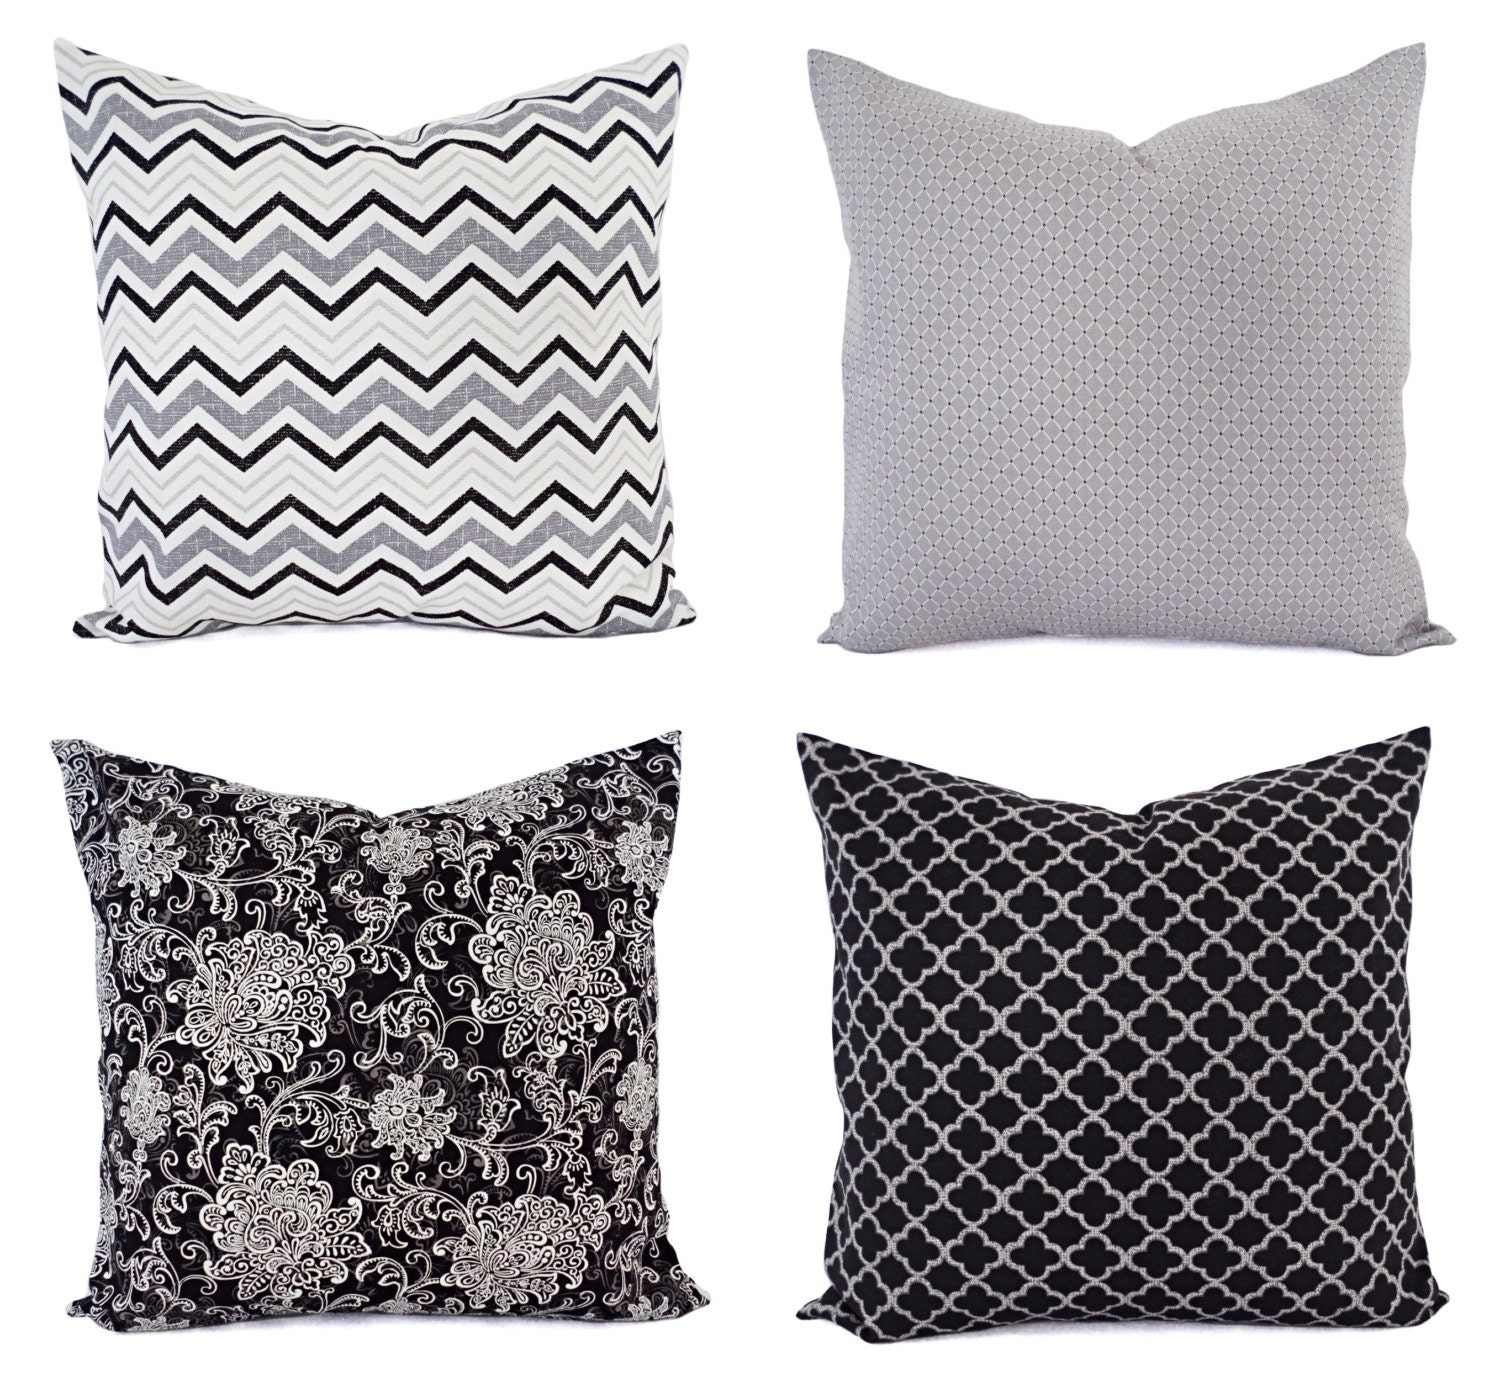 throw pillows allergy gallery for cushion taupe beige neutral grey blanket pillow covers black